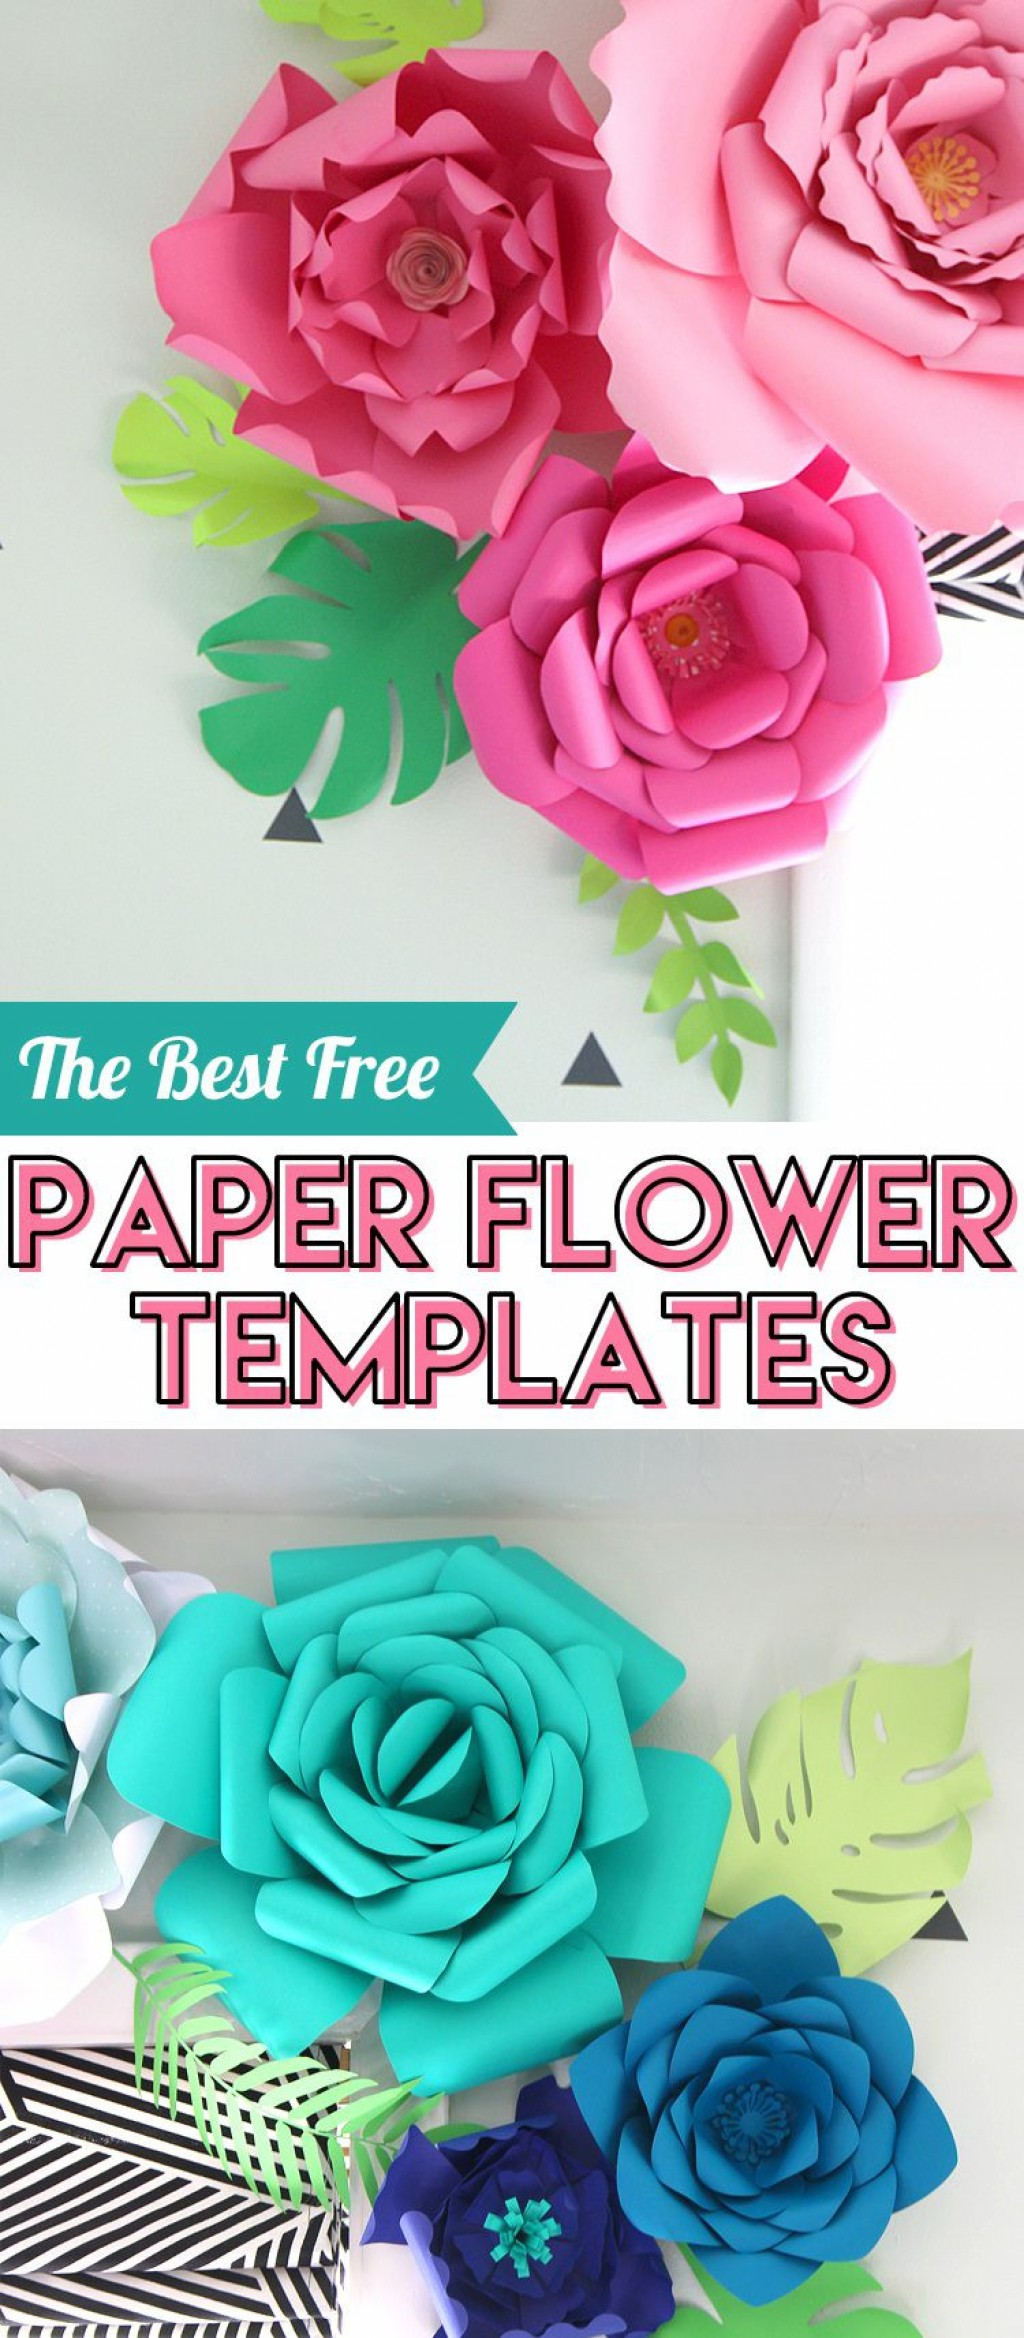 008 Marvelou Giant Rose Paper Flower Template Free Inspiration Large